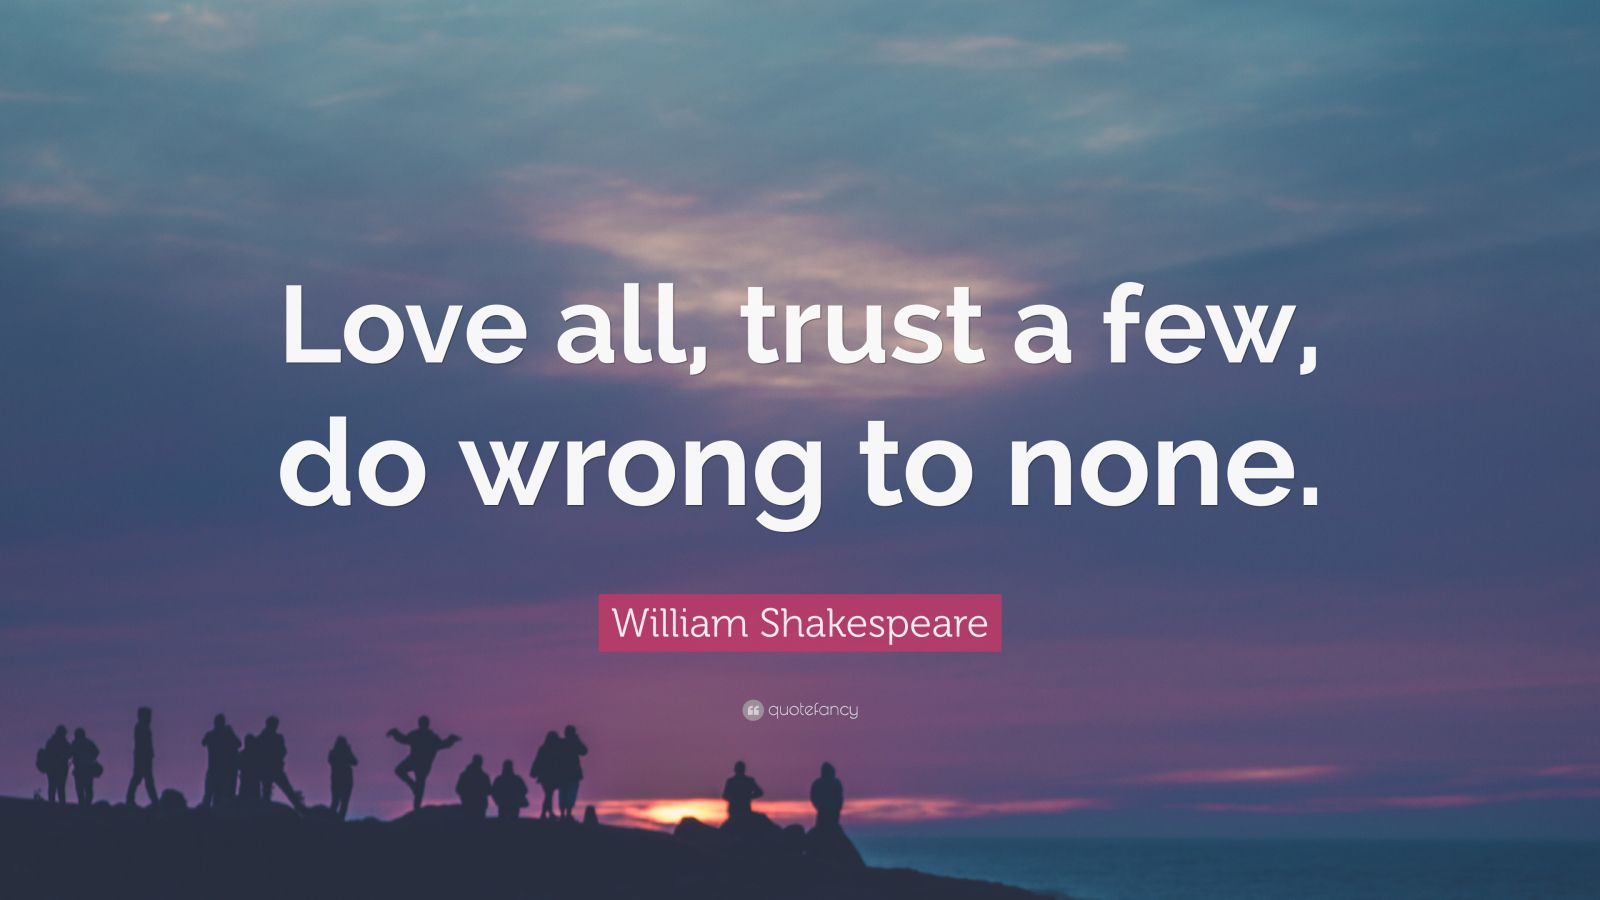 Shakespeare Quotes About Love William Shakespeare Quotes 100 Wallpapers  Quotefancy